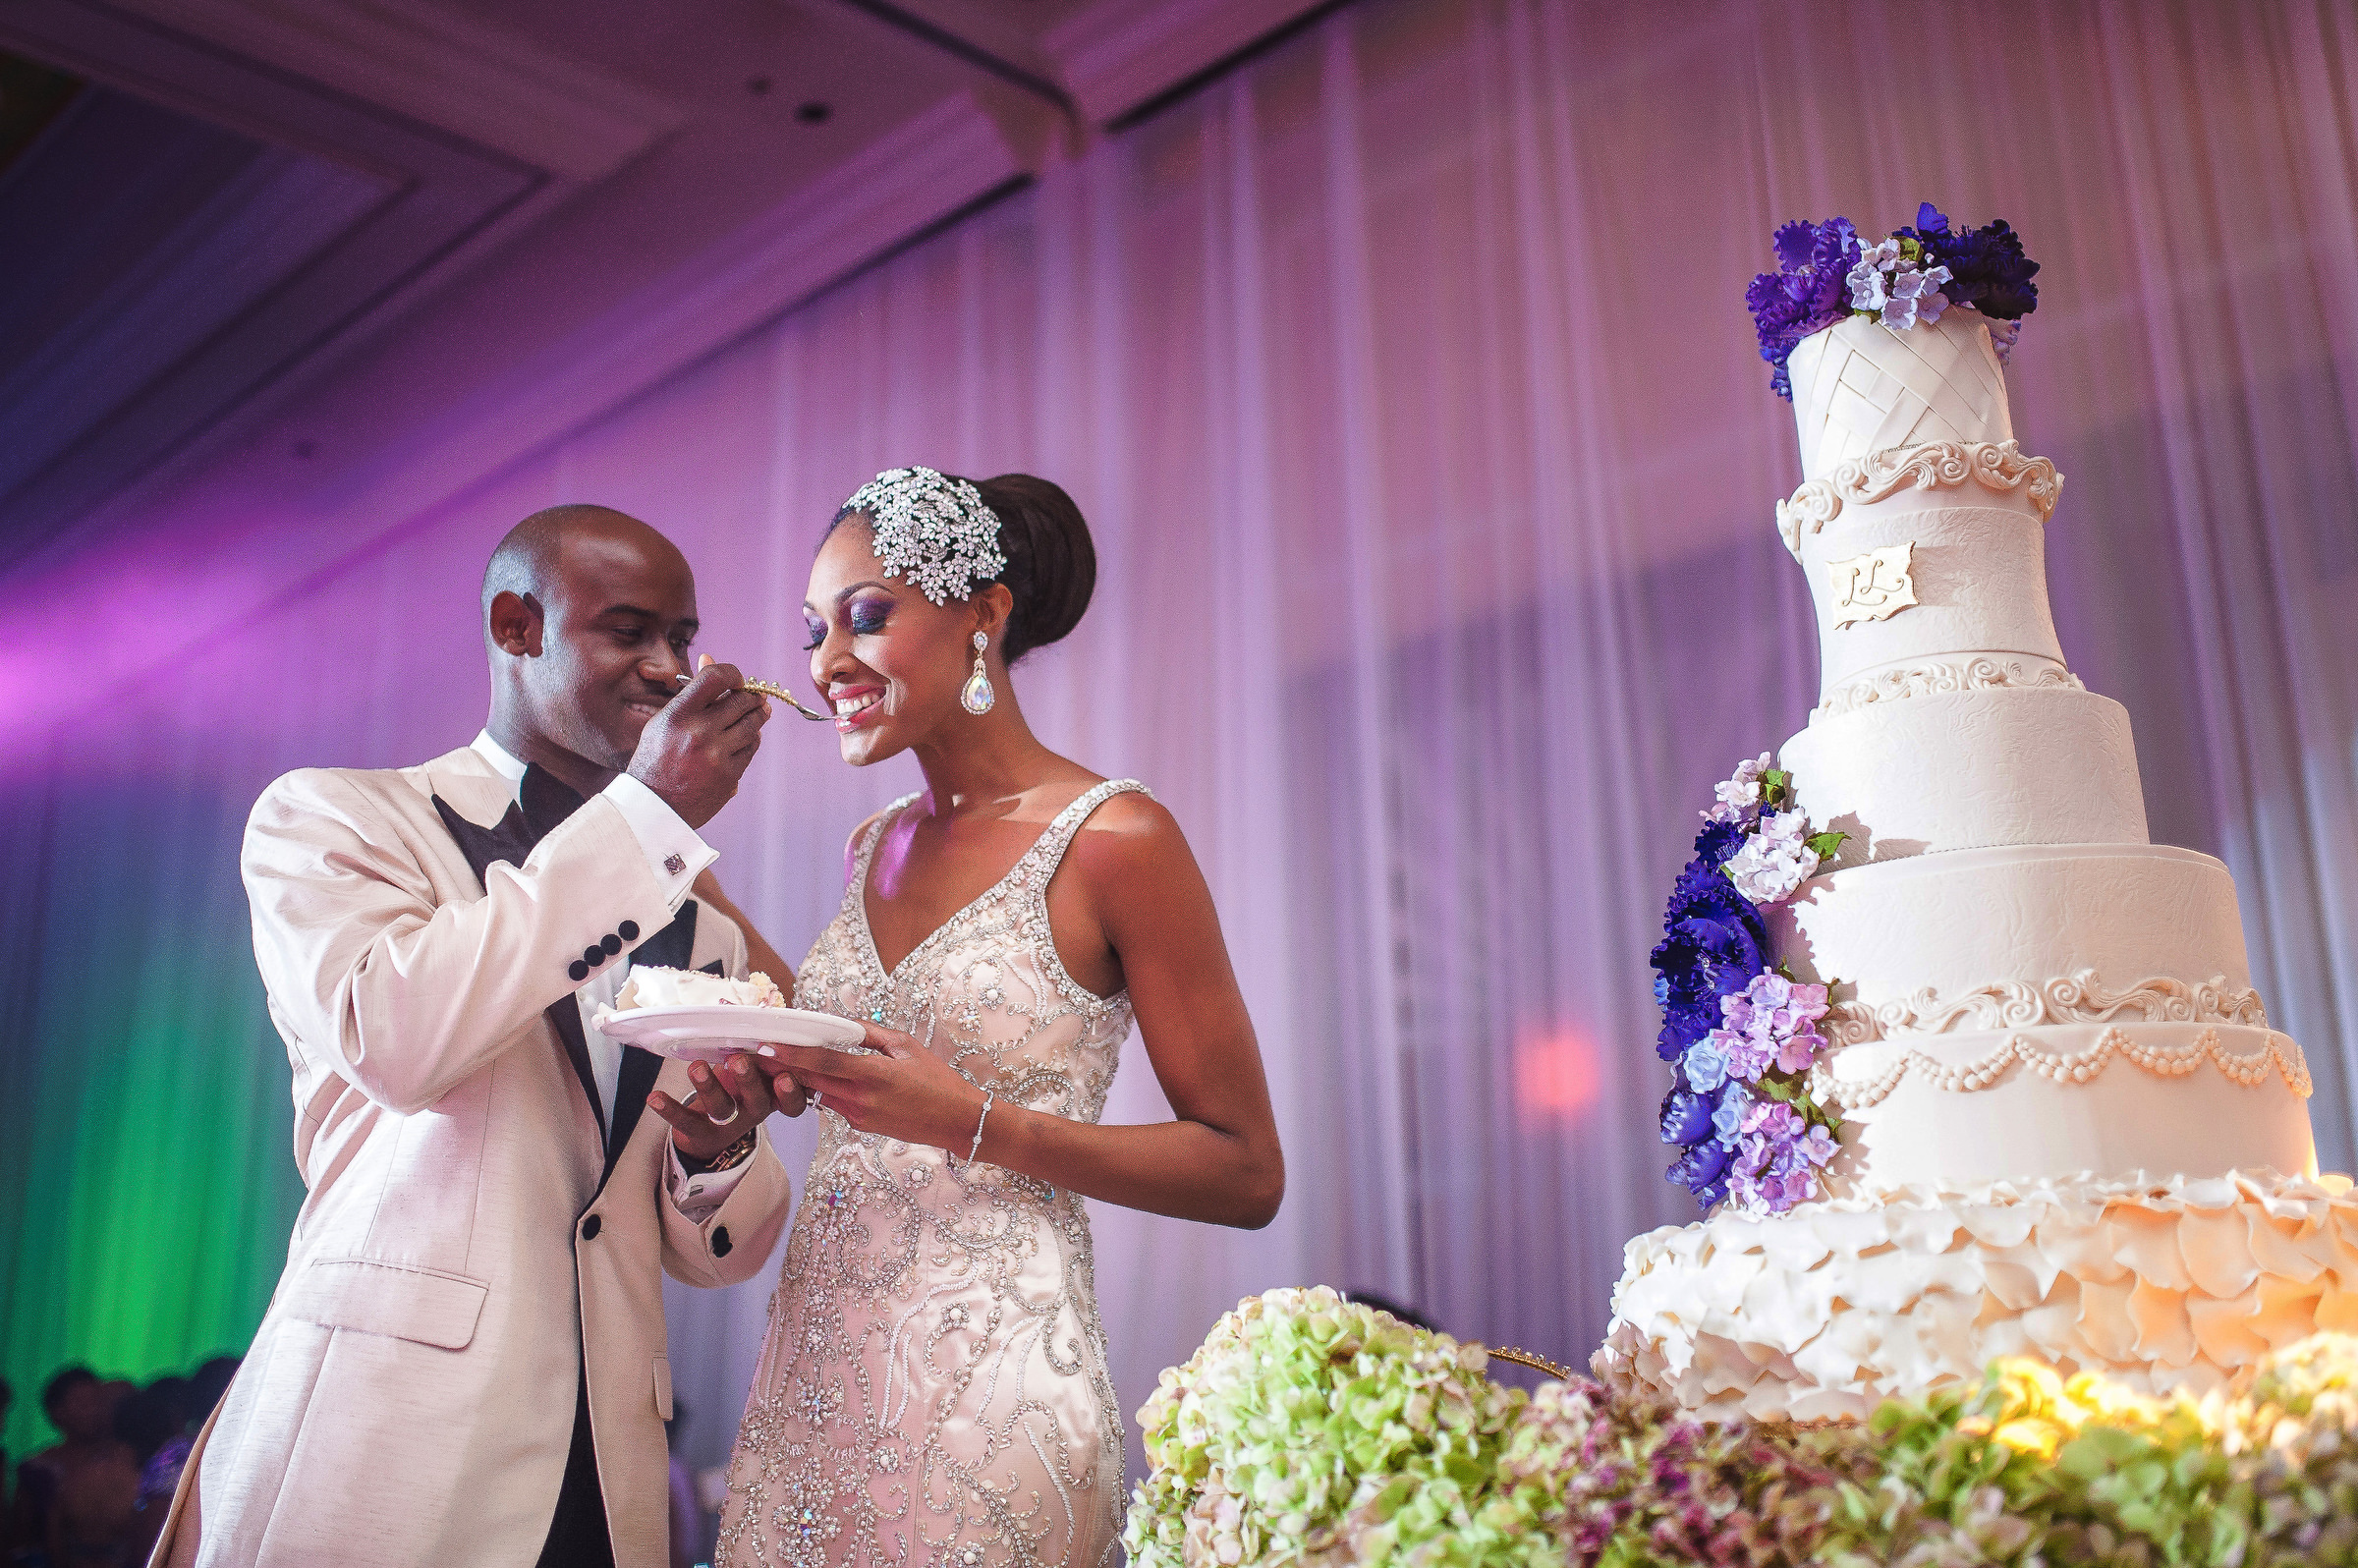 Groom feeding the bride cake against 6 tiered cake- photo by Kirth Bobb Photography